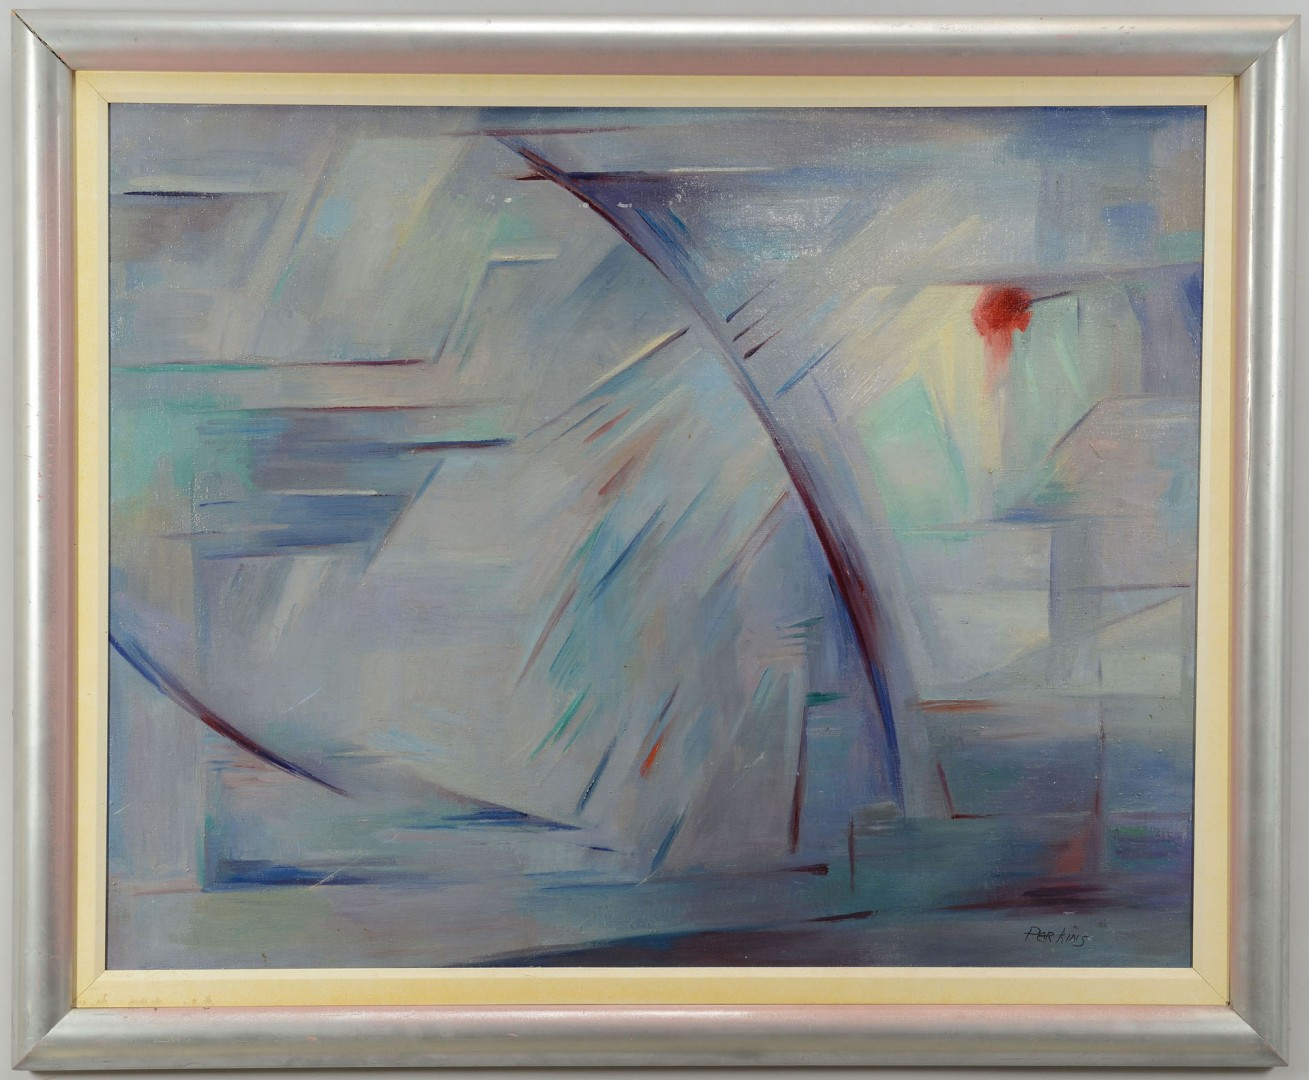 Lot 216: Philip Perkins, abstract oil on canvas